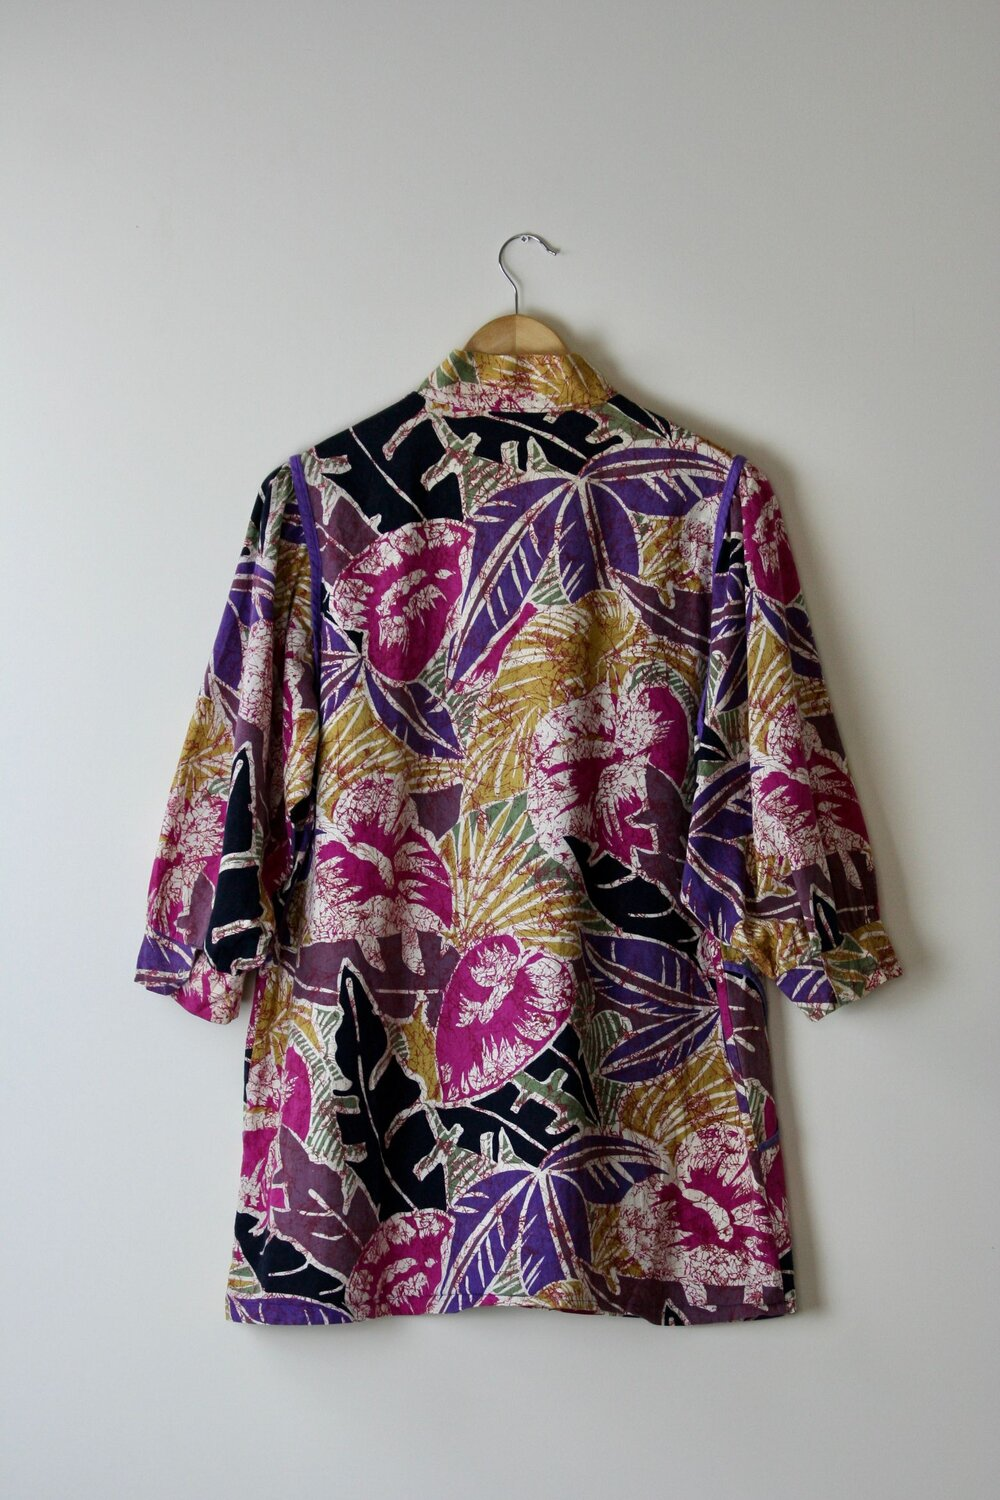 Vintage abstract floral print blouse